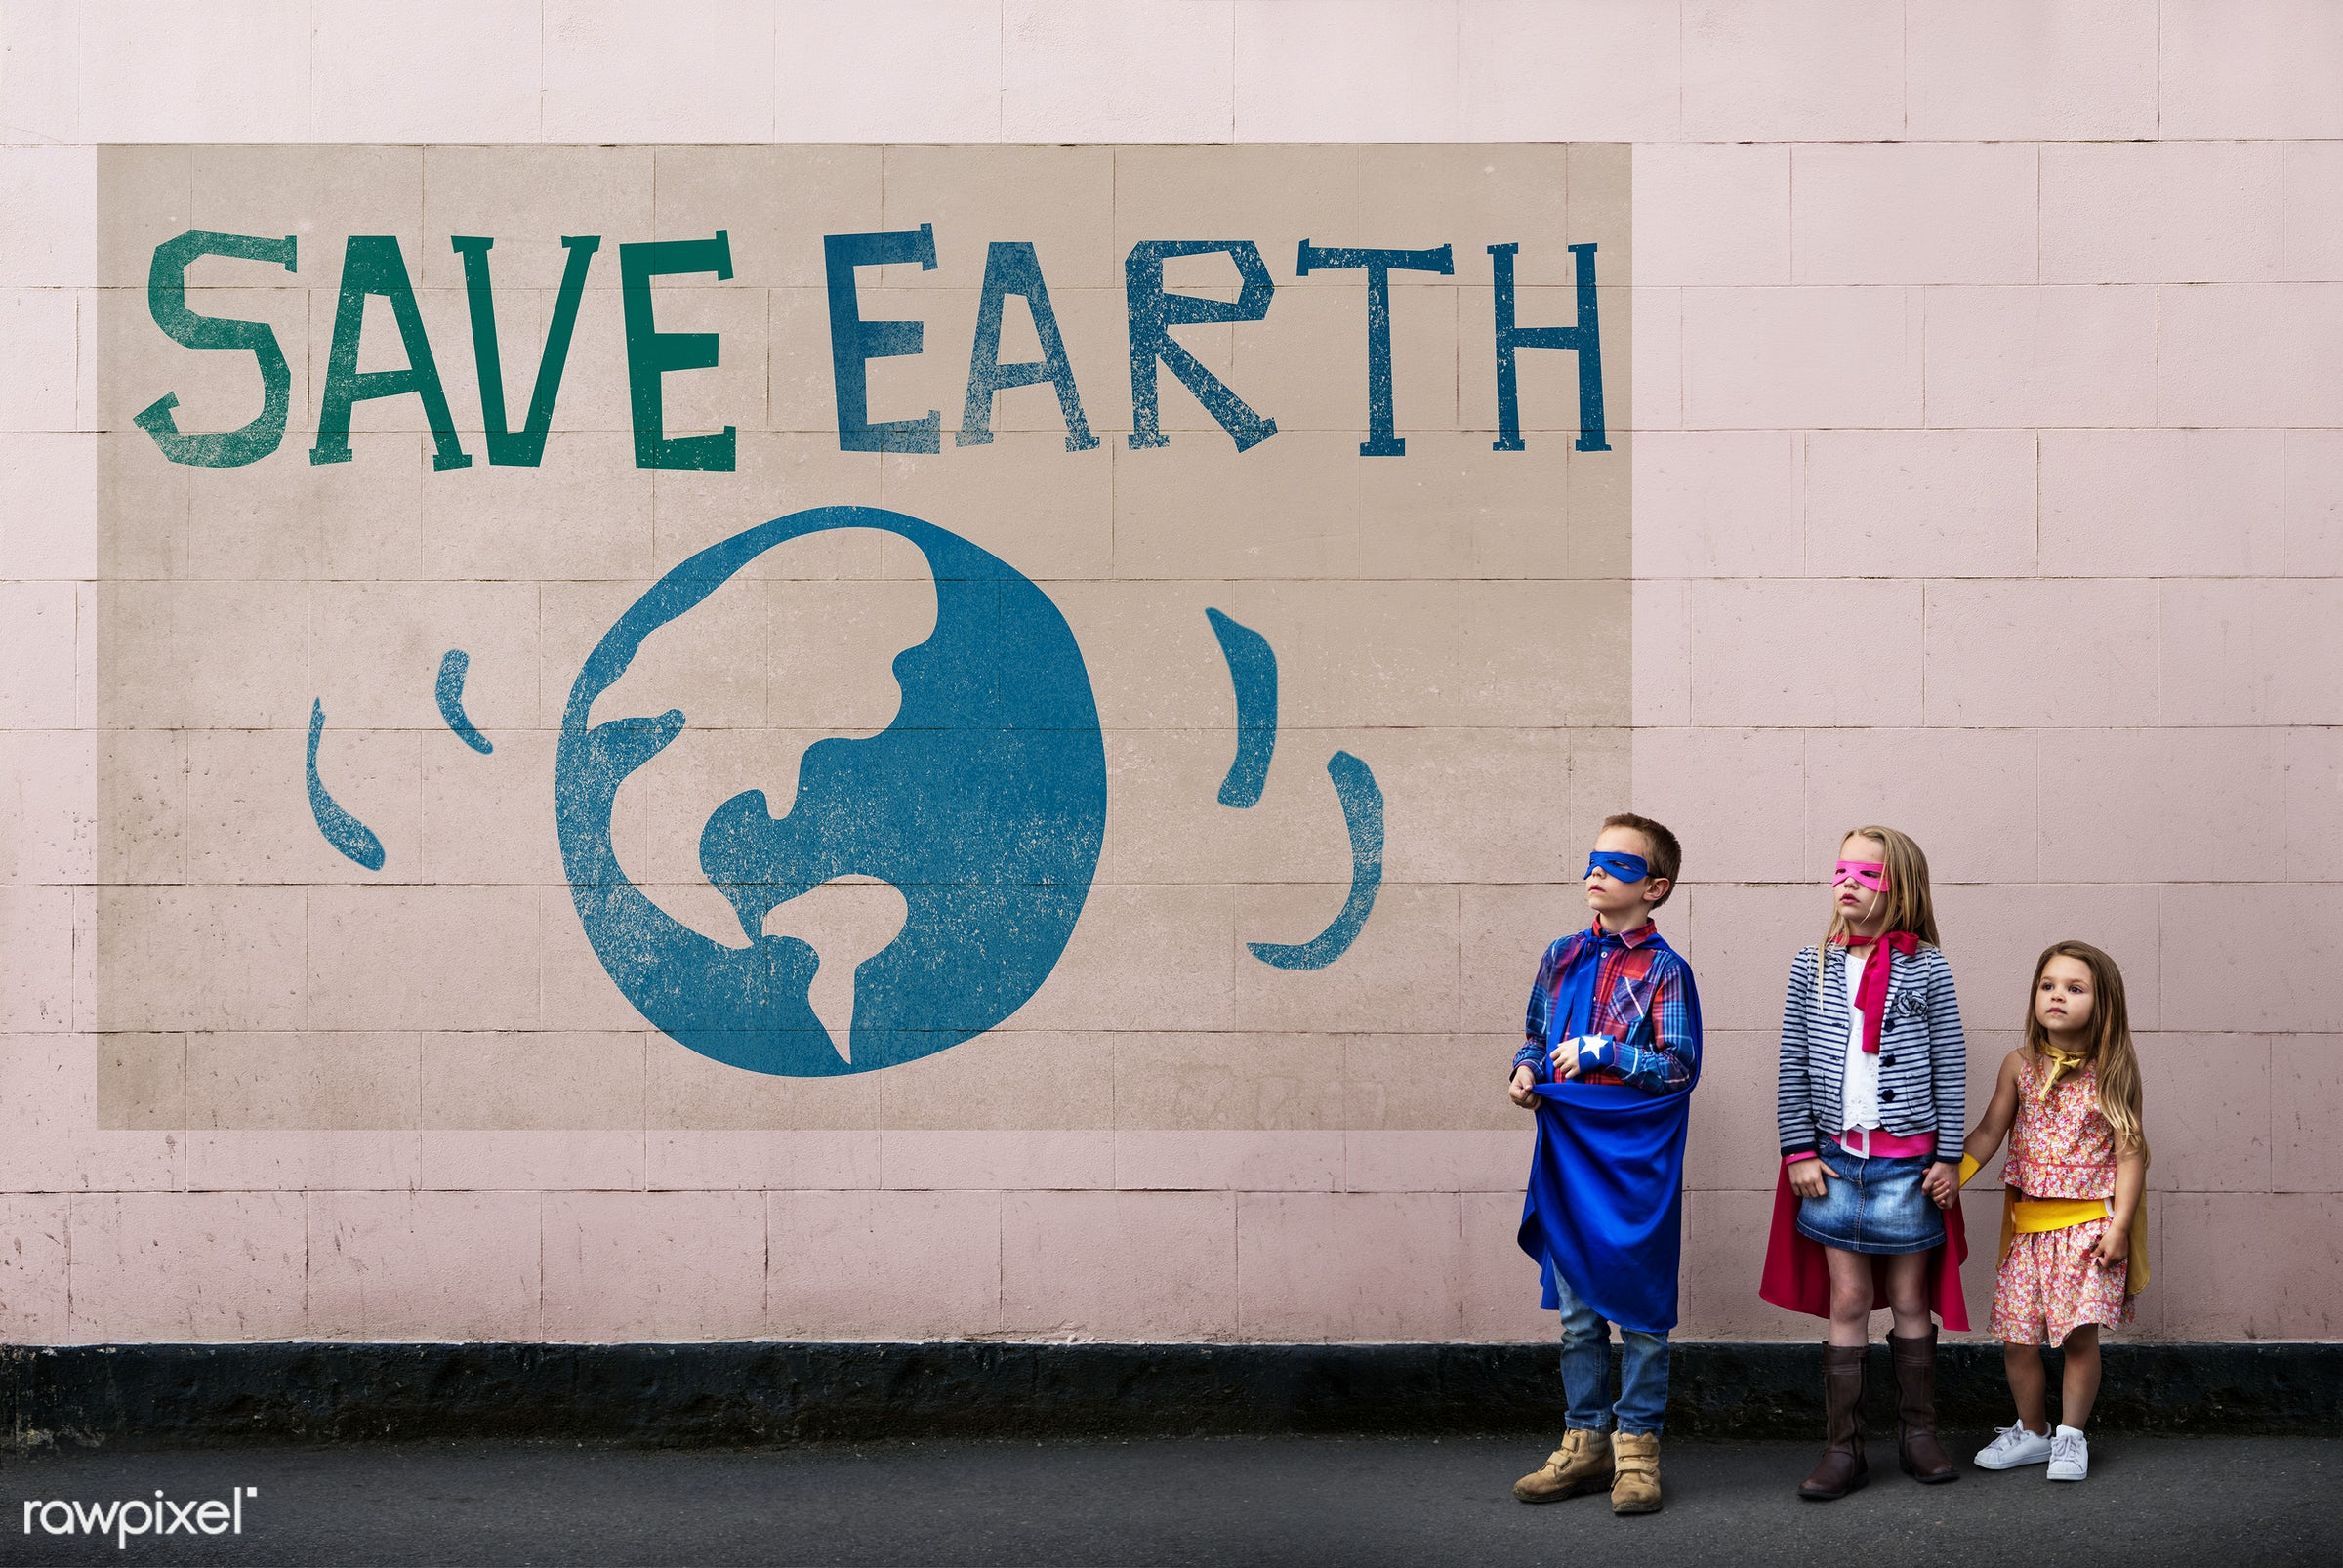 annual event, awareness, boy, brave, brother, concept, costume, dressed up, earth, earth day, ecology, environment,...